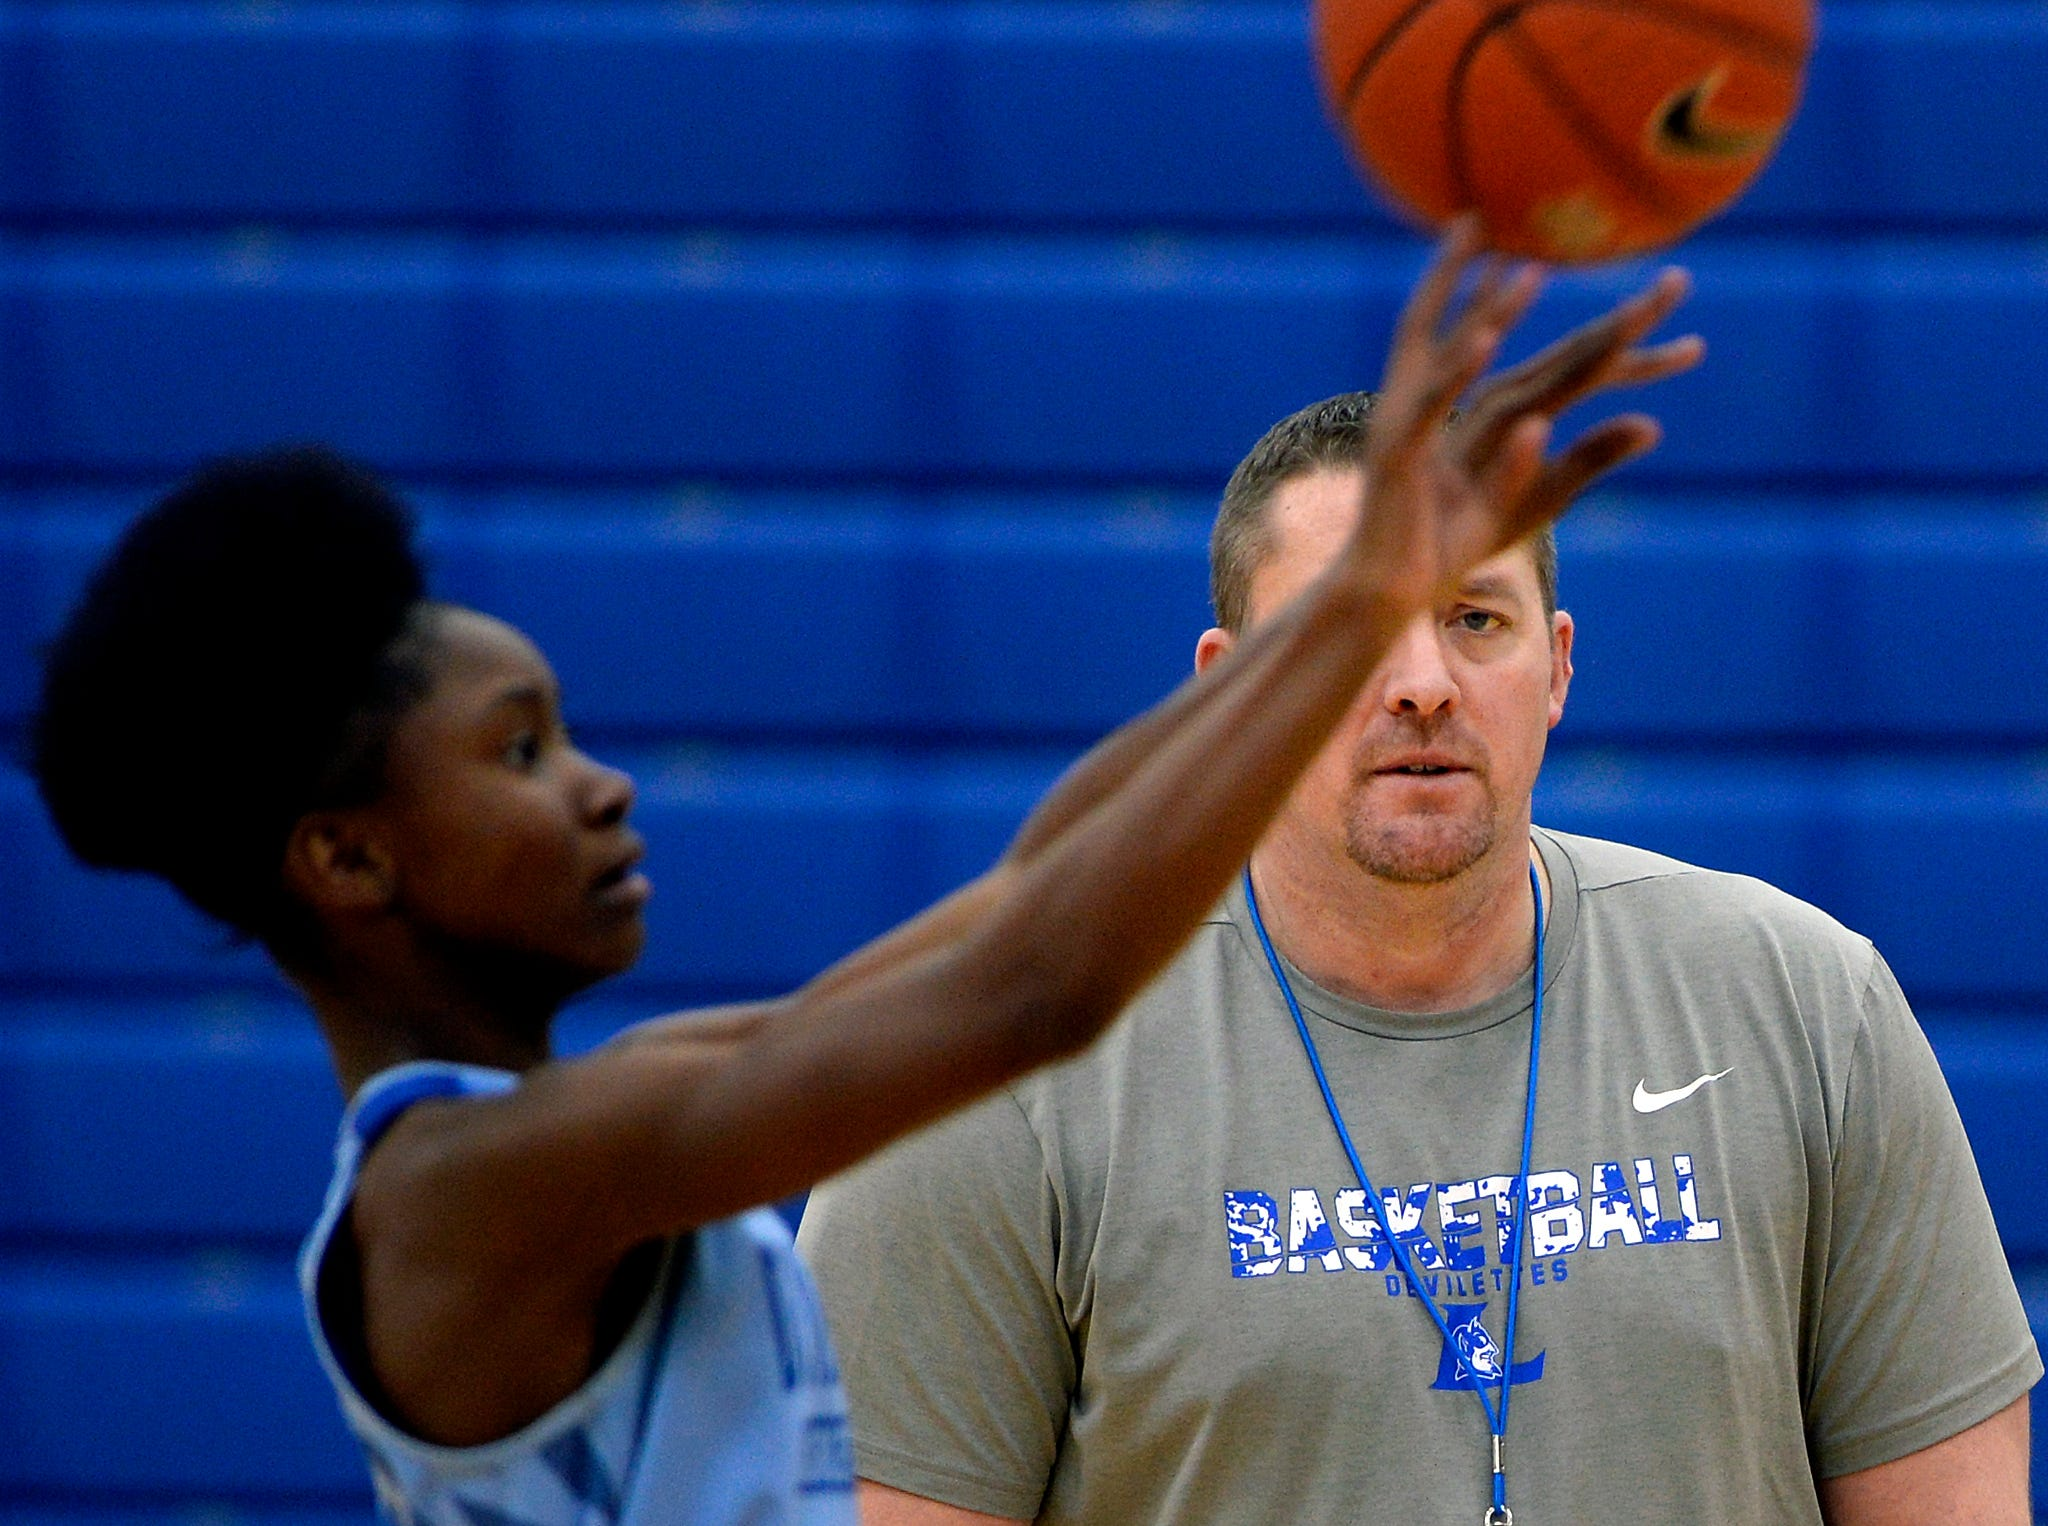 Lebanon High School girls basketball coach Cory Barrett watches players shoot during a team practice on Monday, March 4, 2019, in Lebanon Tenn. Lebanon is preparing for the state playoffs.